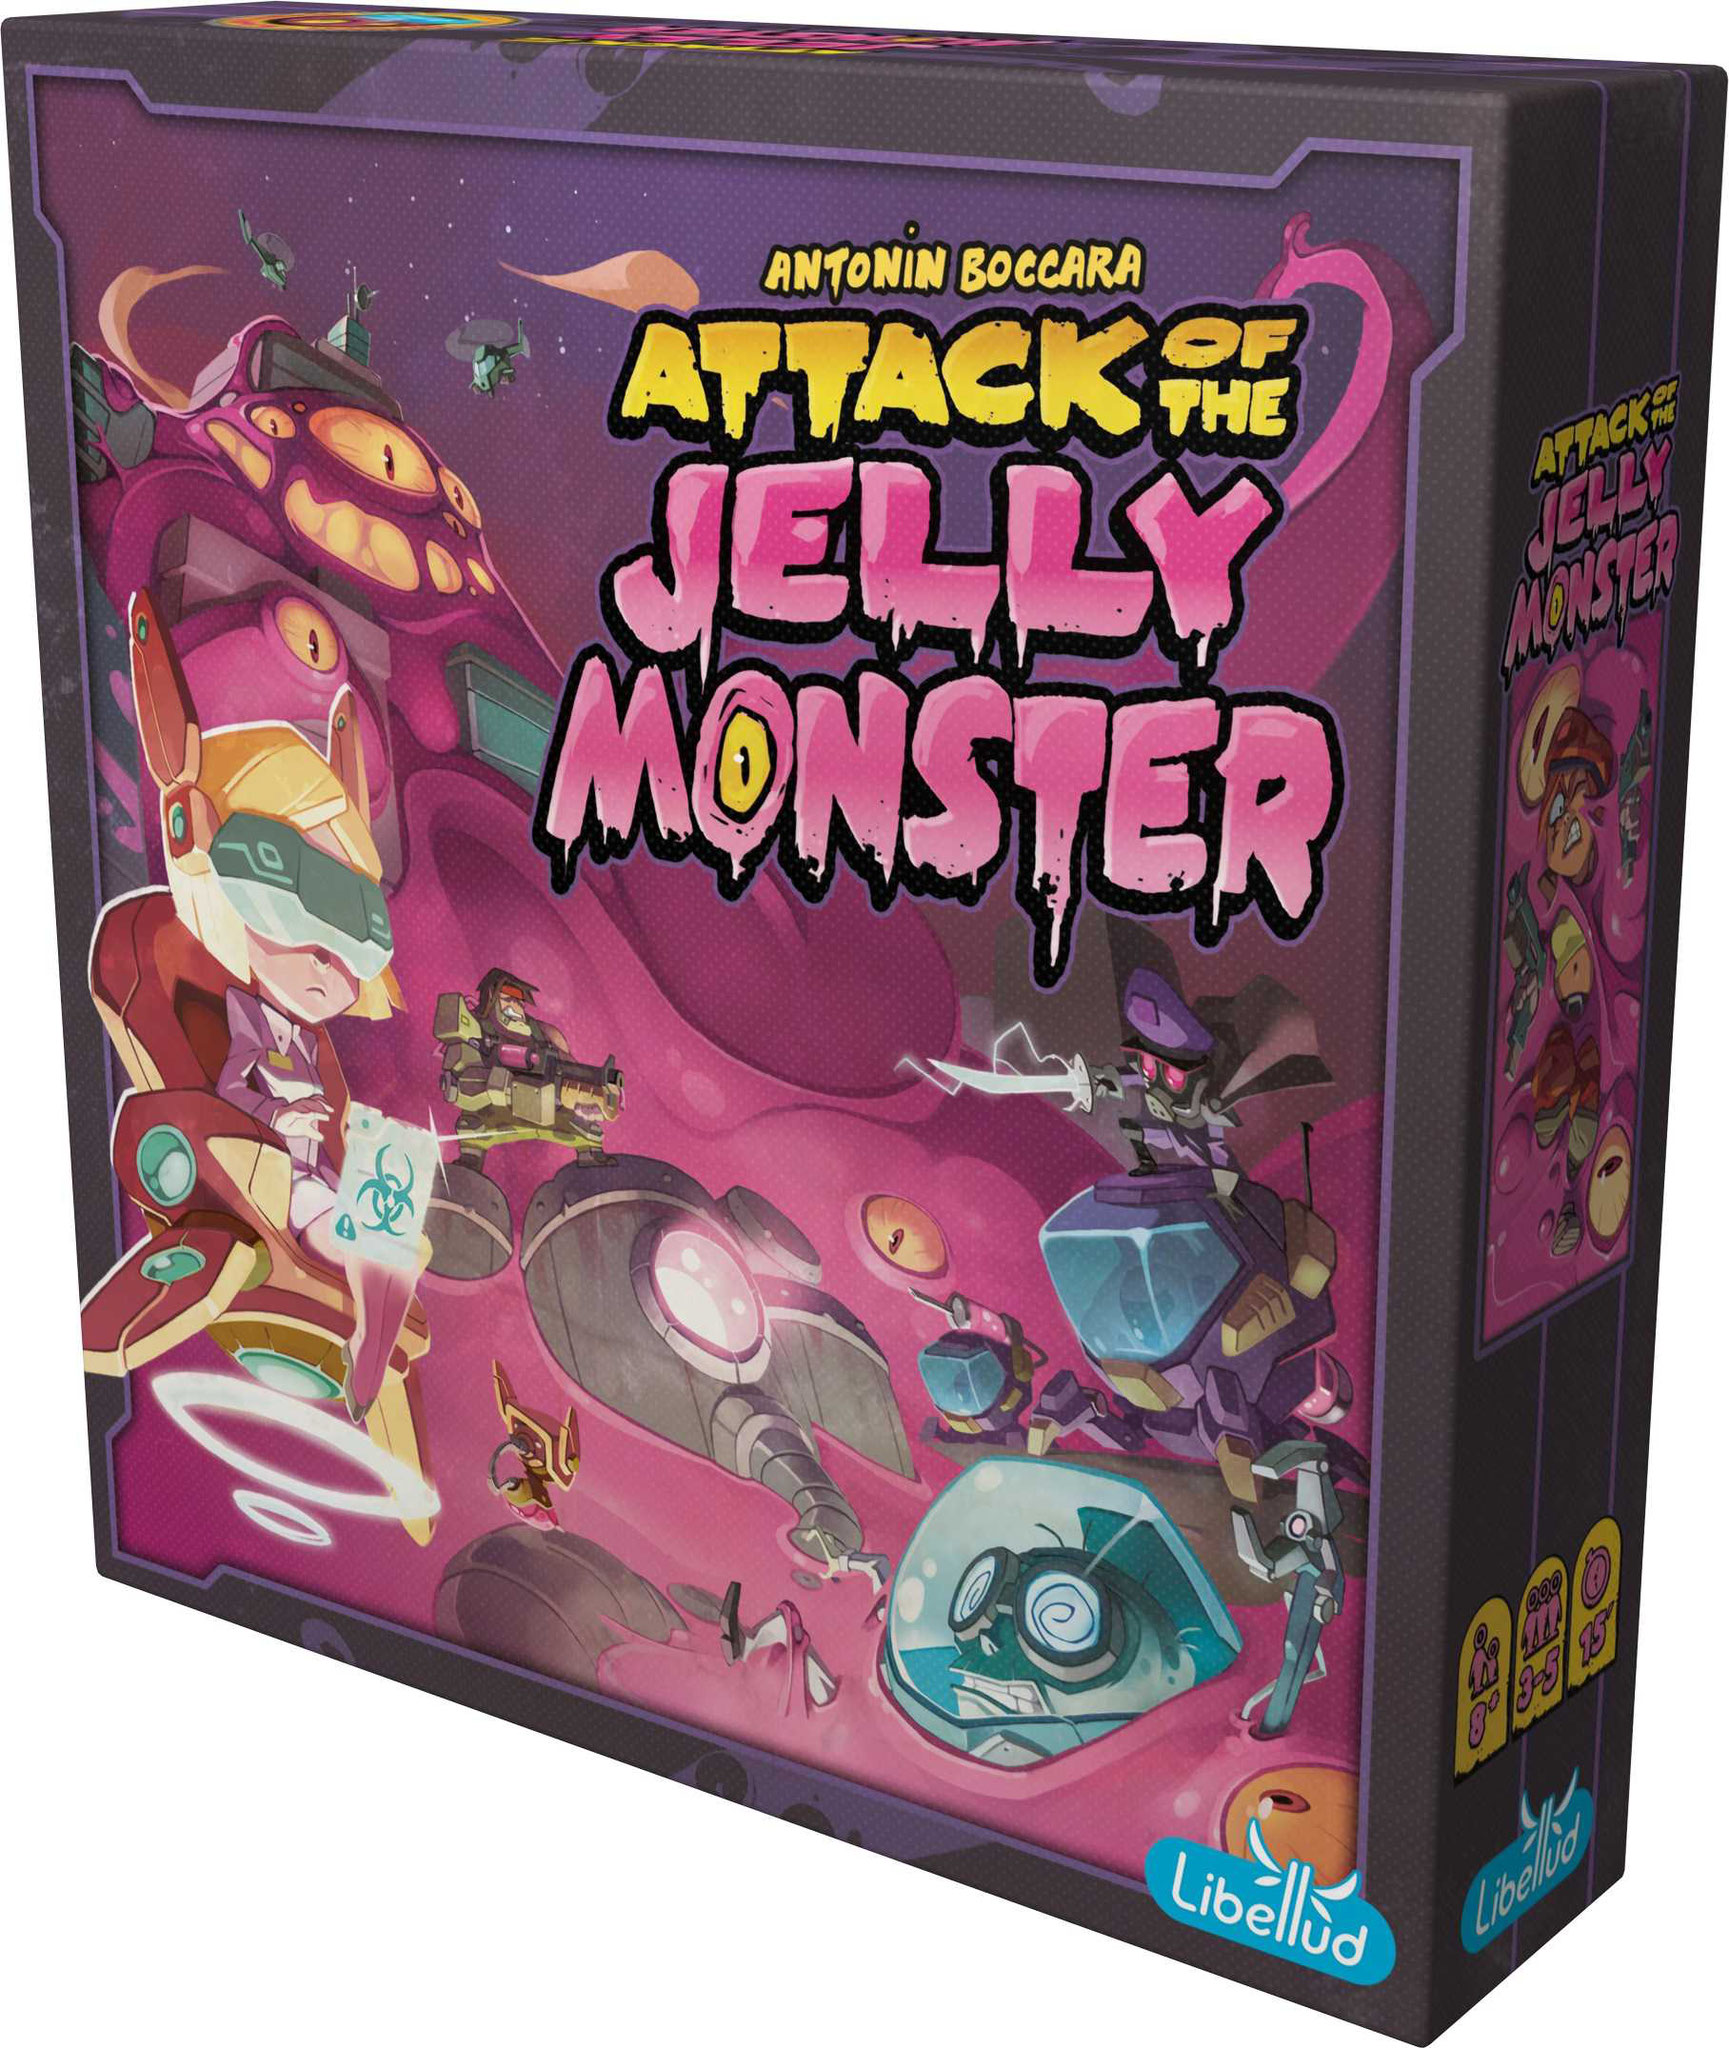 Attack of jelly monster [Libellud]